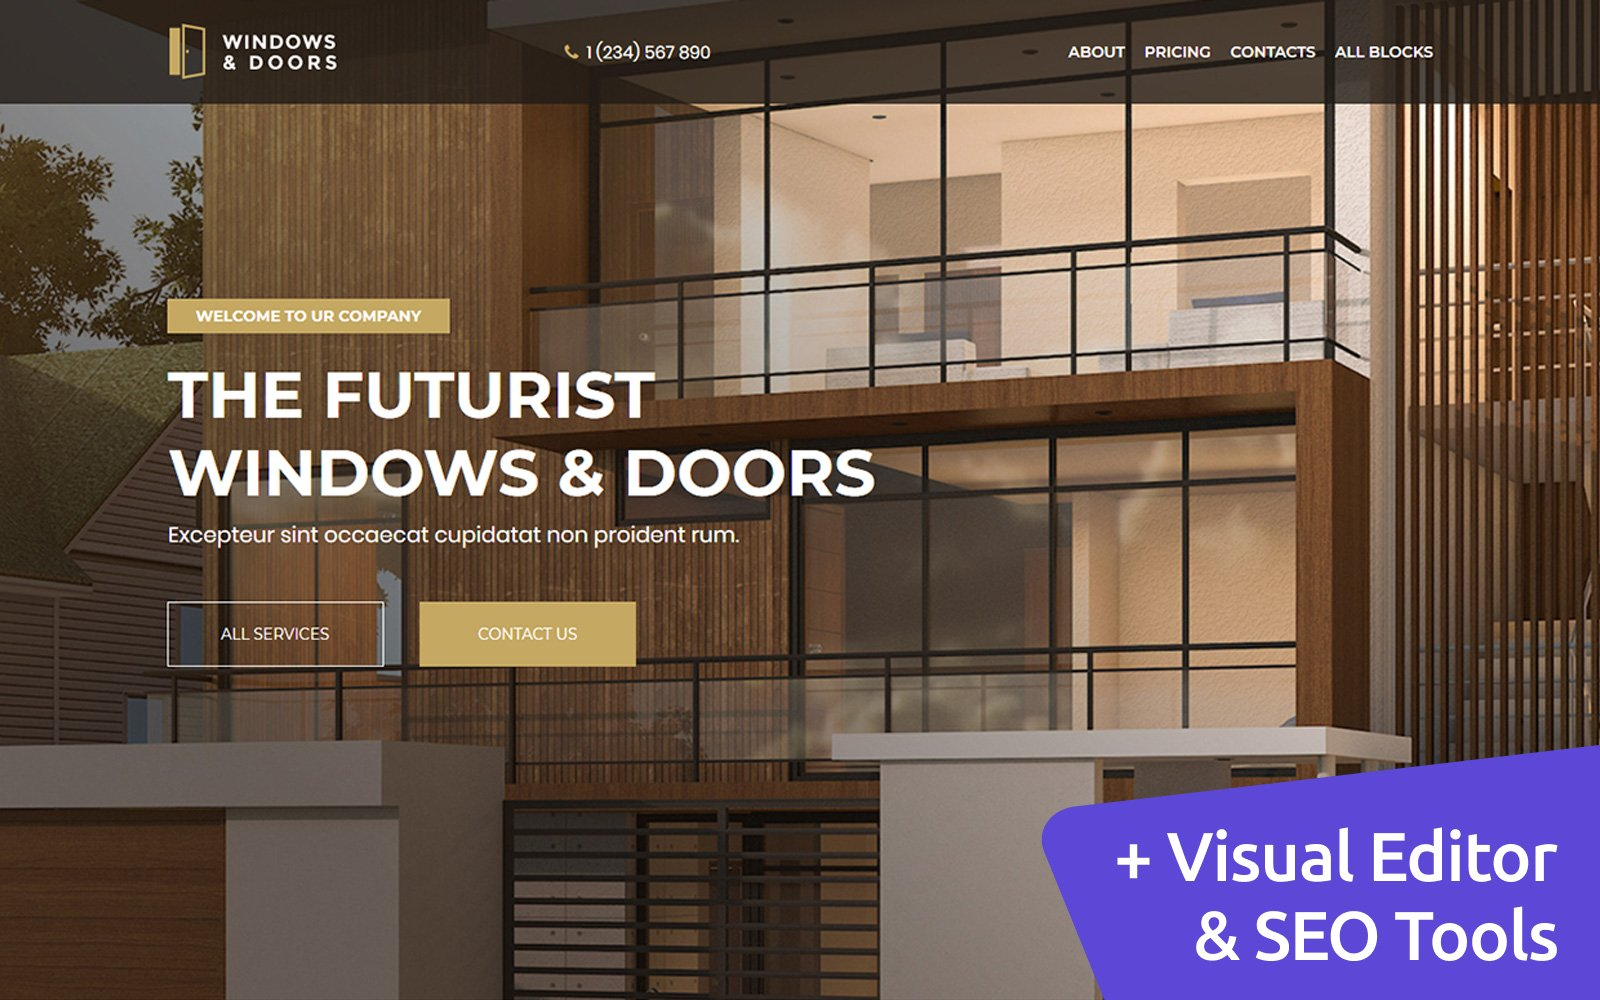 Windows and Doors MotoCMS Landing Page Template